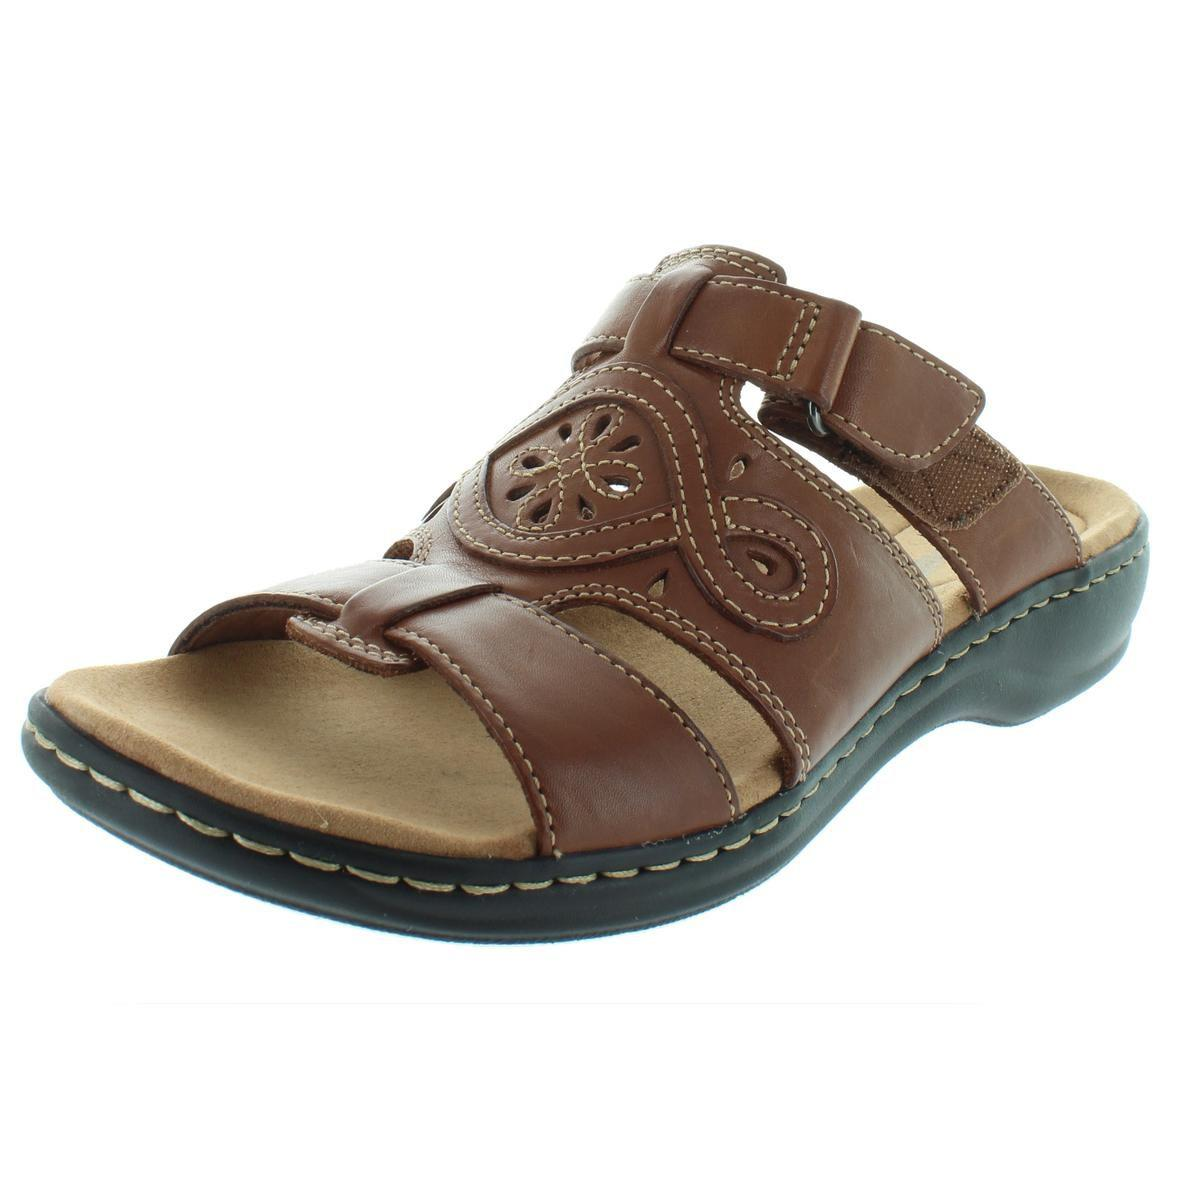 3af59a4c63b8 Lyst - Clarks Womens Leisa Higley Leather Open Toe Slide Sandals in ...